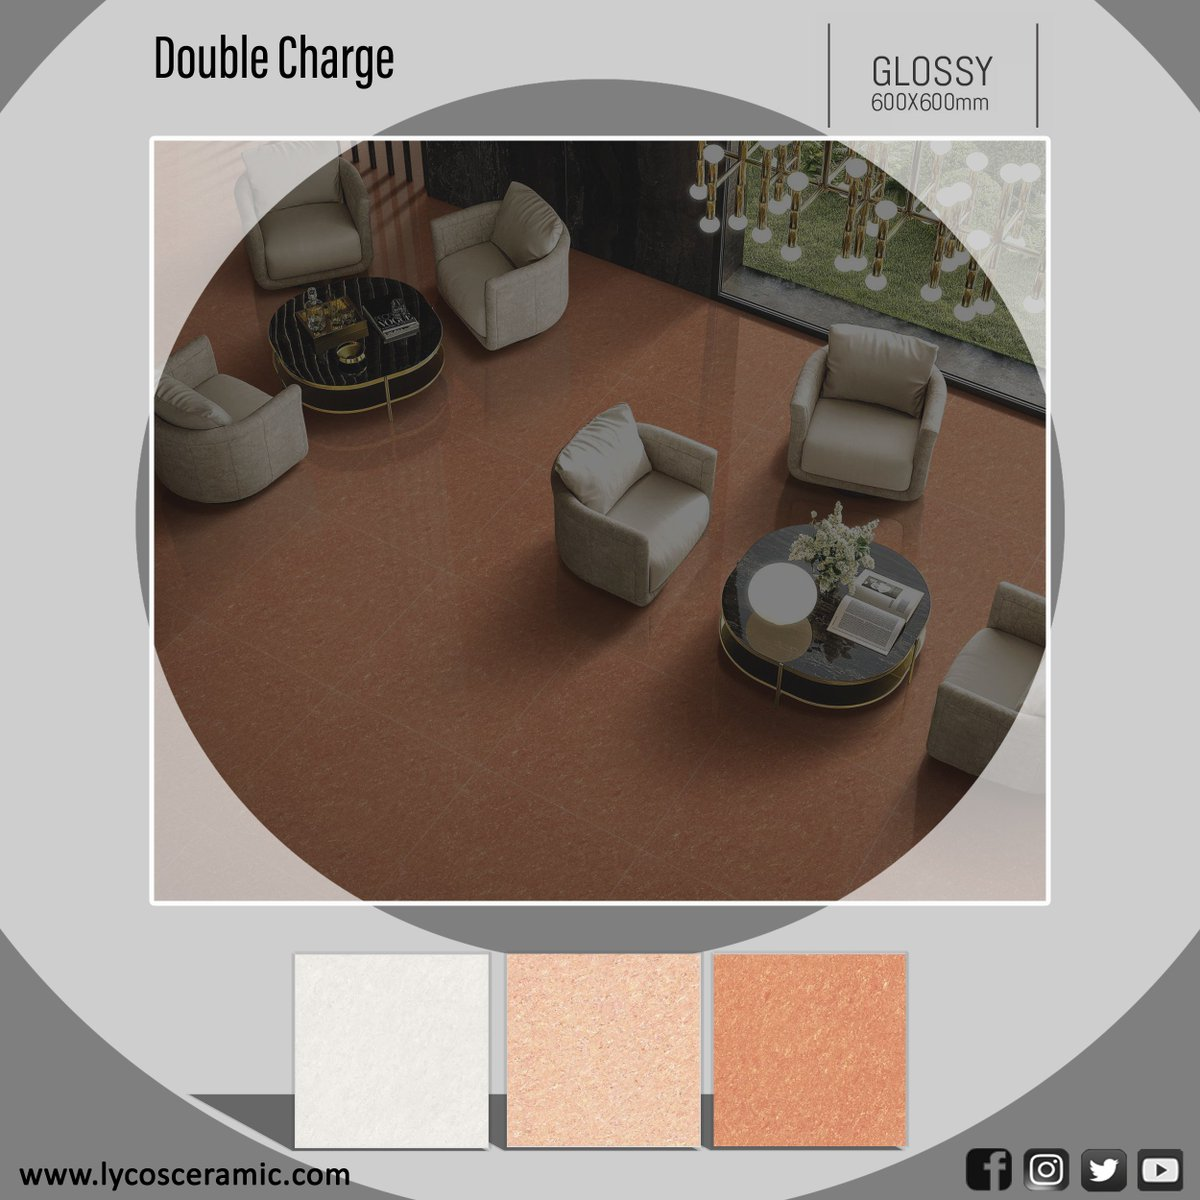 For all the places you Love Porcelain Floor Tiles #DoubleCharge Tile Size: 60x60 CM Check out more designs: http://www.lycosceramic.com/tile  For Catalogue Email: export@lycosceramic.com  #FloorTiles #Flooring #GlossyFinish #PorcelainTile #VitrifiedTile #TileDesign #LycosCeramic #Lycospic.twitter.com/j1r6bUELcp